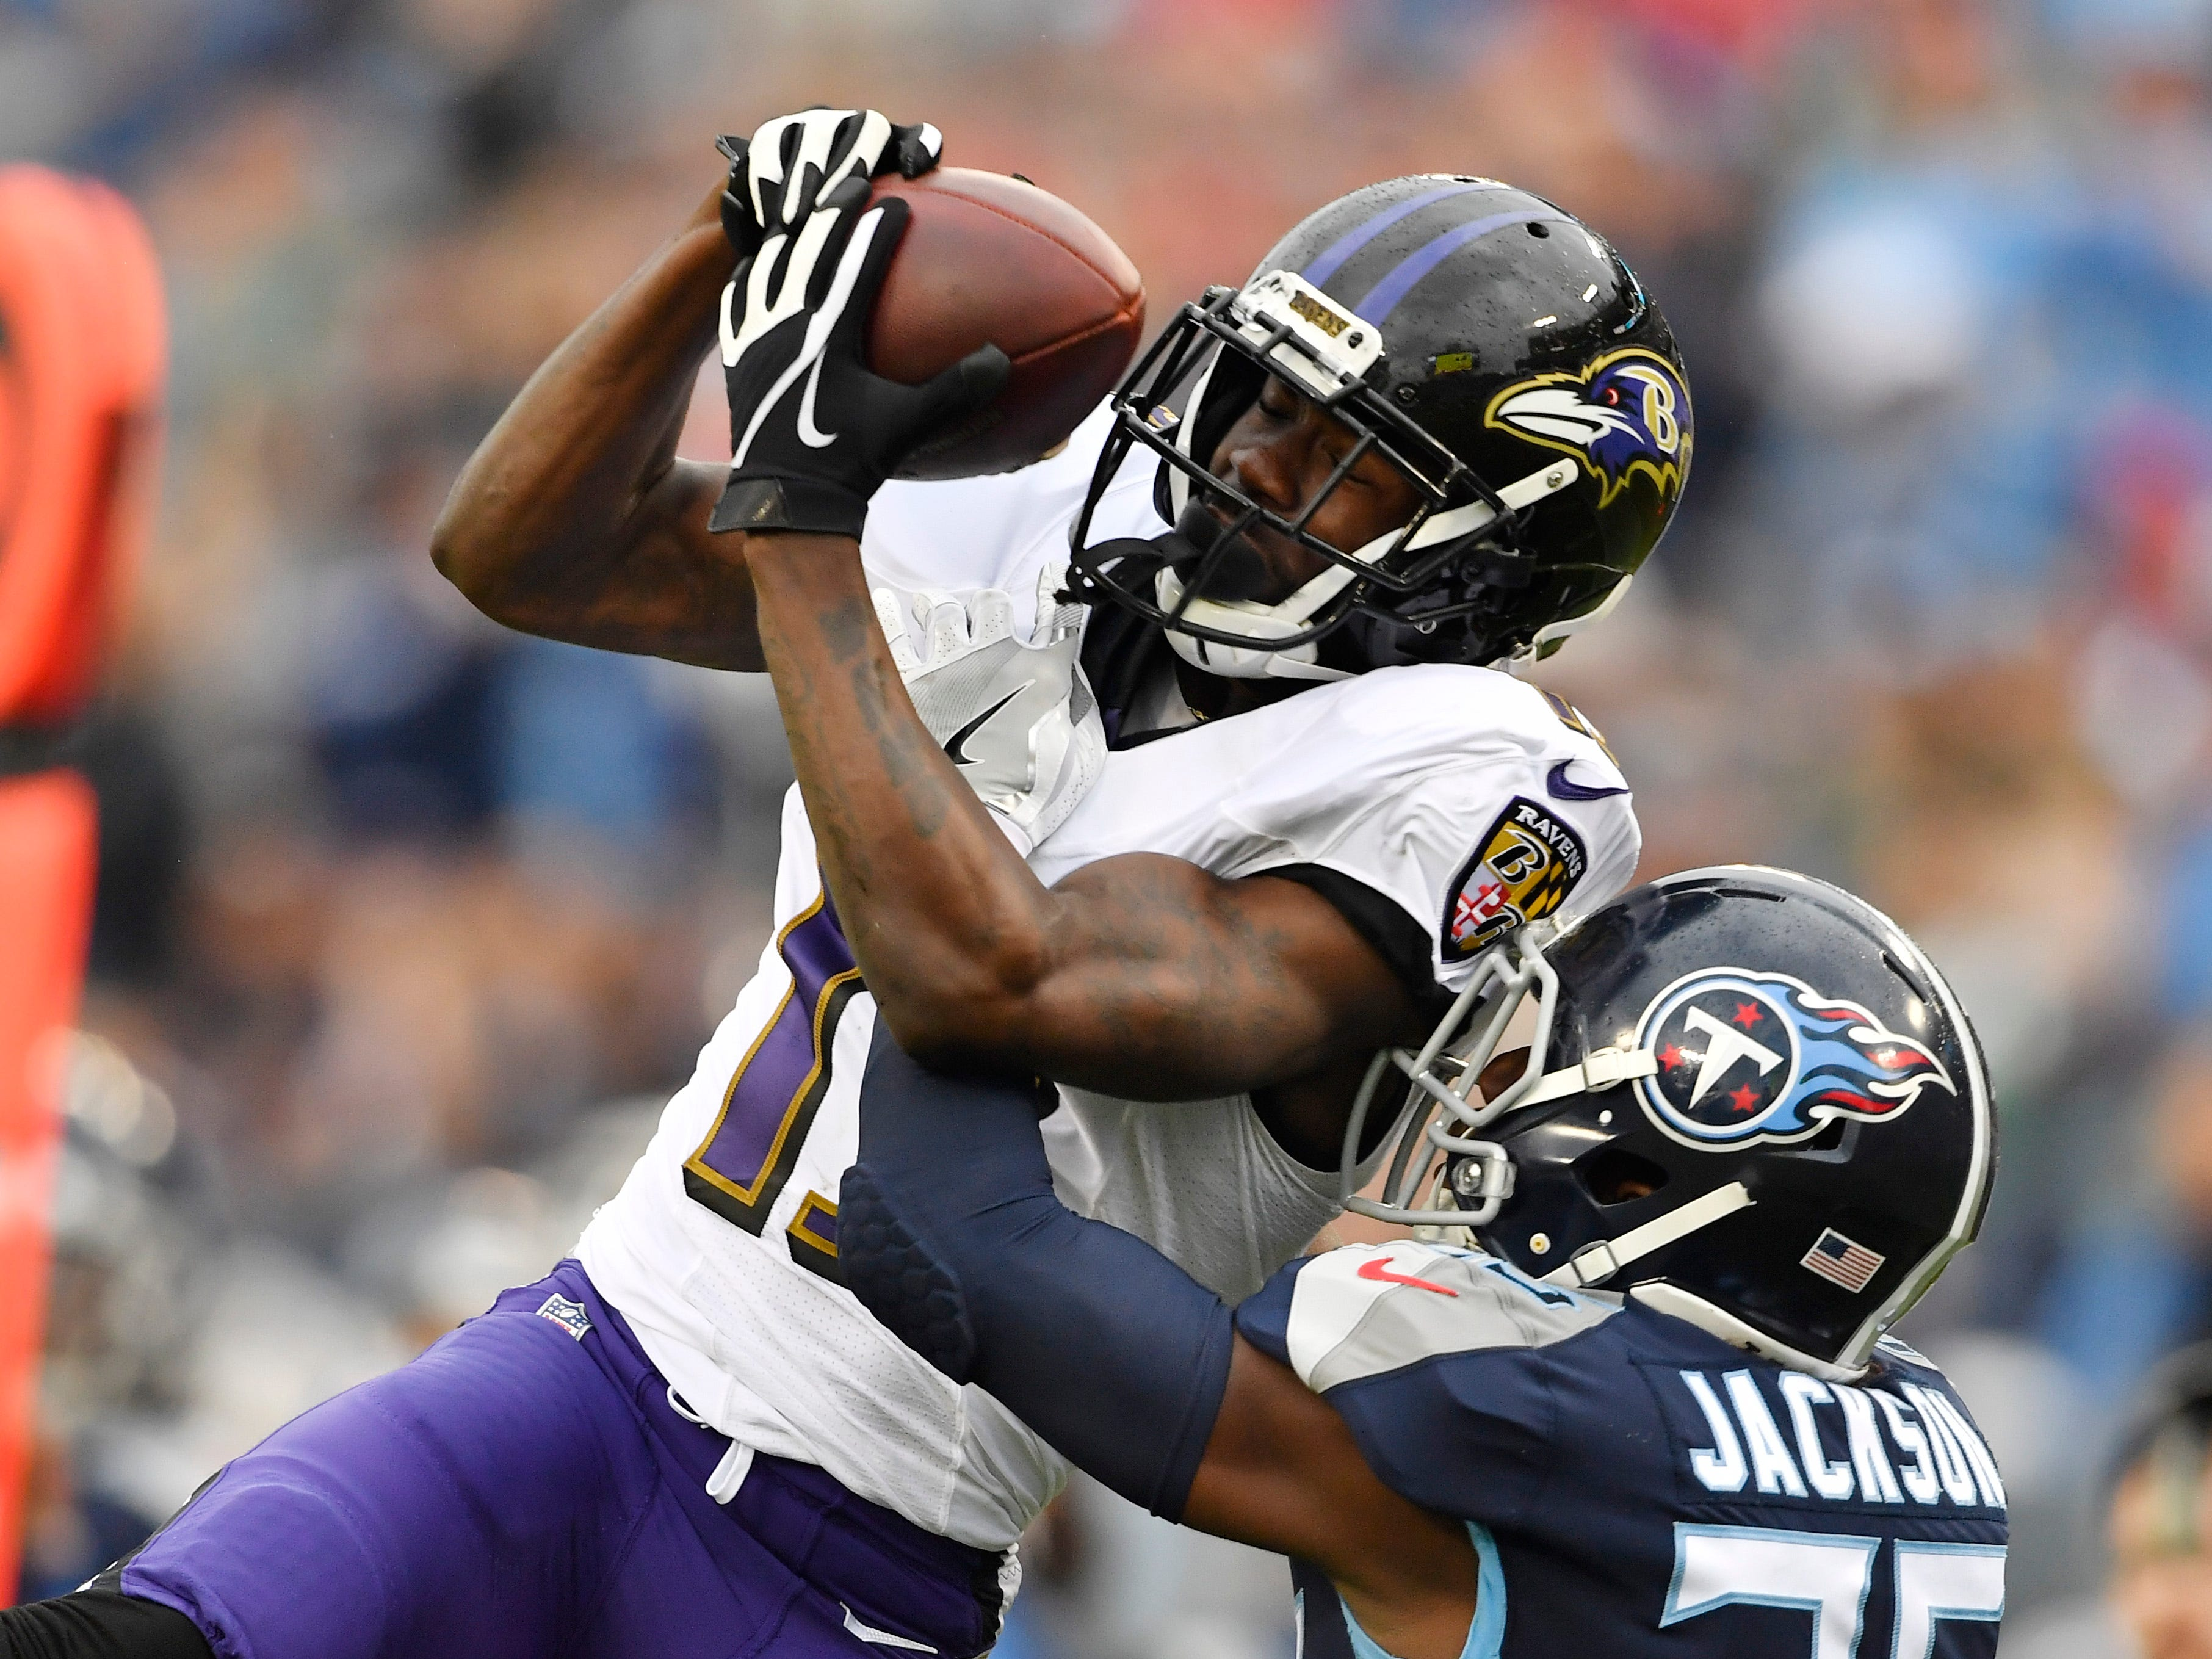 Ravens wide receiver John Brown (13) goes up for a catch over Titans cornerback Adoree' Jackson (25) in the second quarter at Nissan Stadium Sunday, Oct. 14, 2018, in Nashville, Tenn.